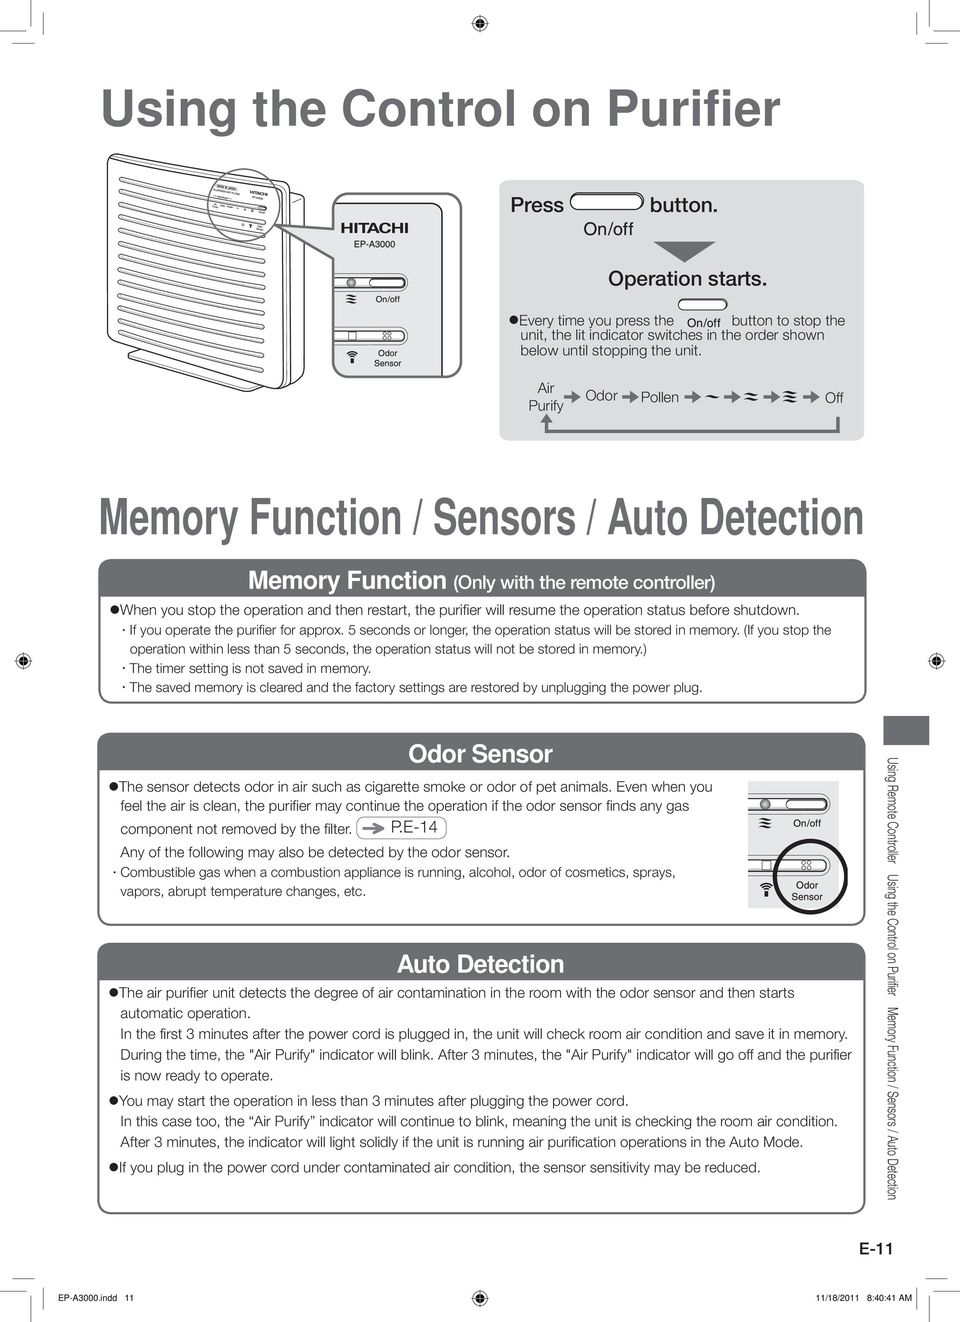 Ep A3000 Instruction Manual Hitachi Air Purifier Model Contents W If You Operate The For Approx 5 Seconds Or